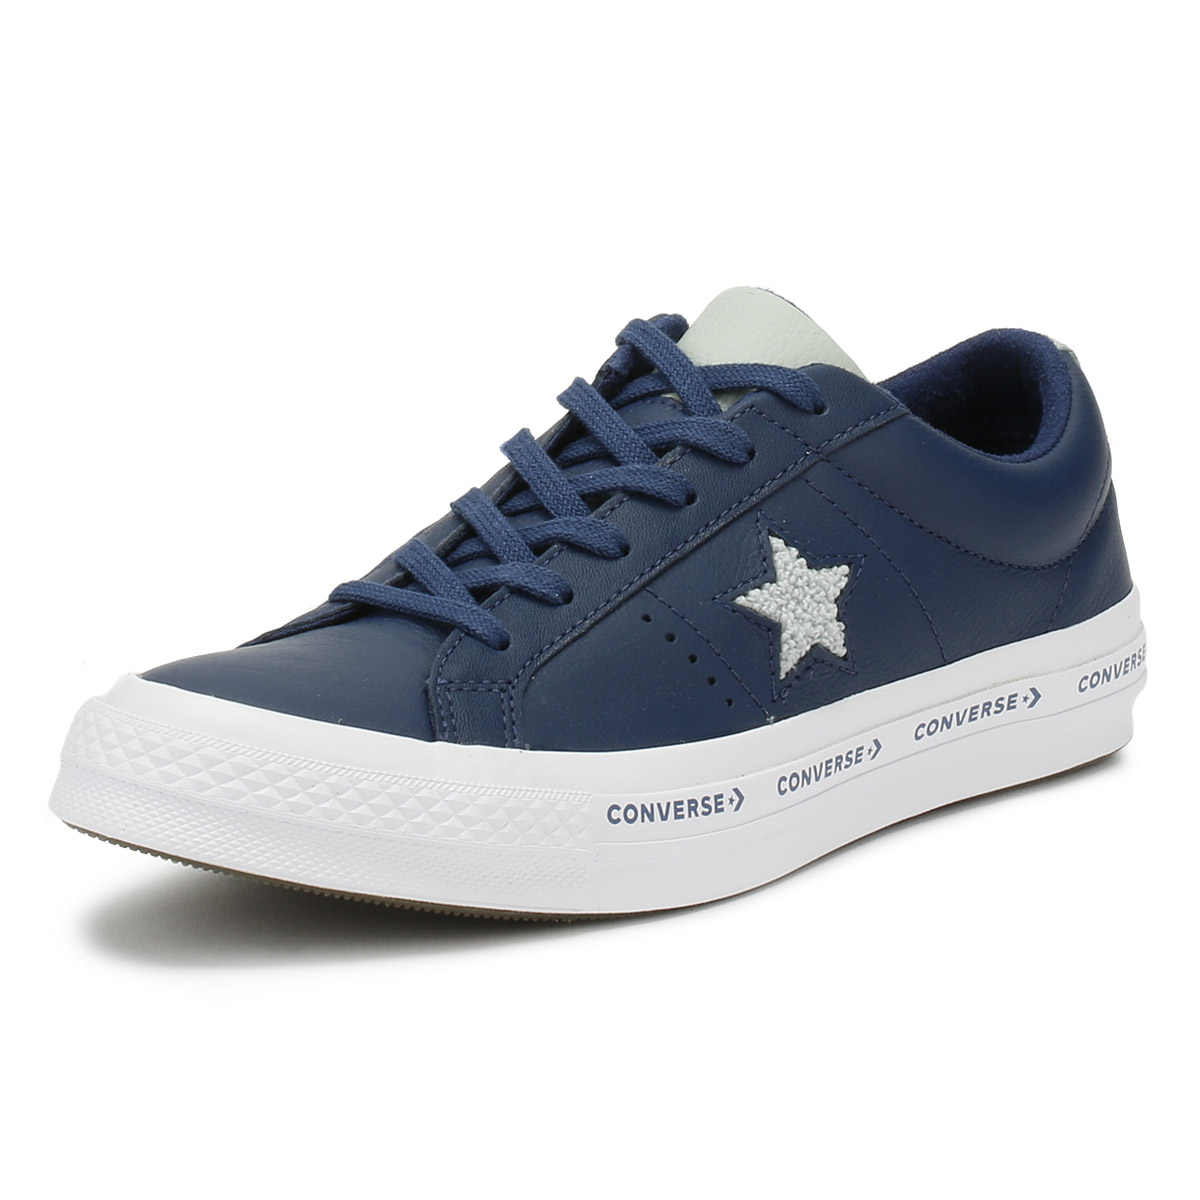 090a16335b48 Details about Converse One Star Mens Ox Trainers Navy Blue Pinstripe  Leather Skate Shoes